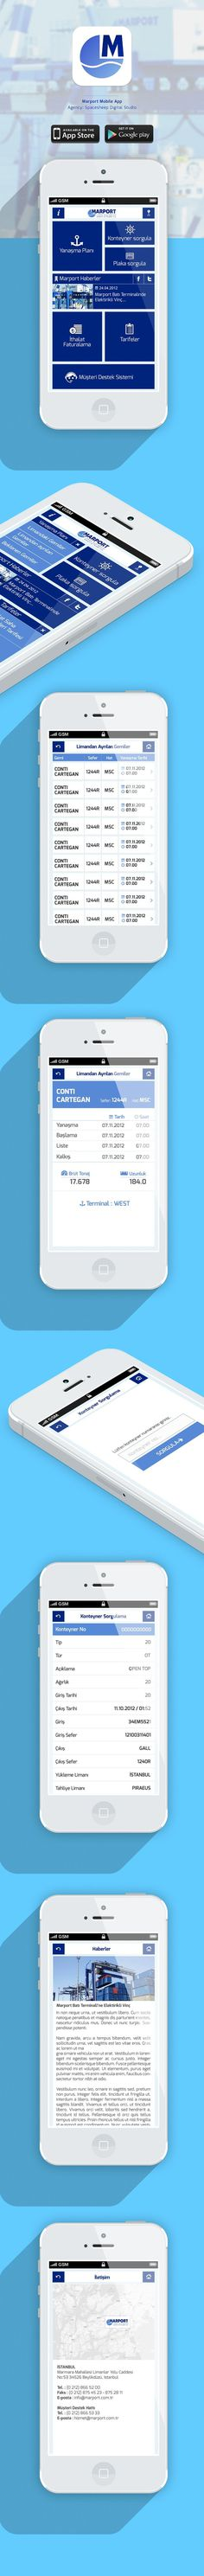 Marport Mobile Application IOS &Android on Behance